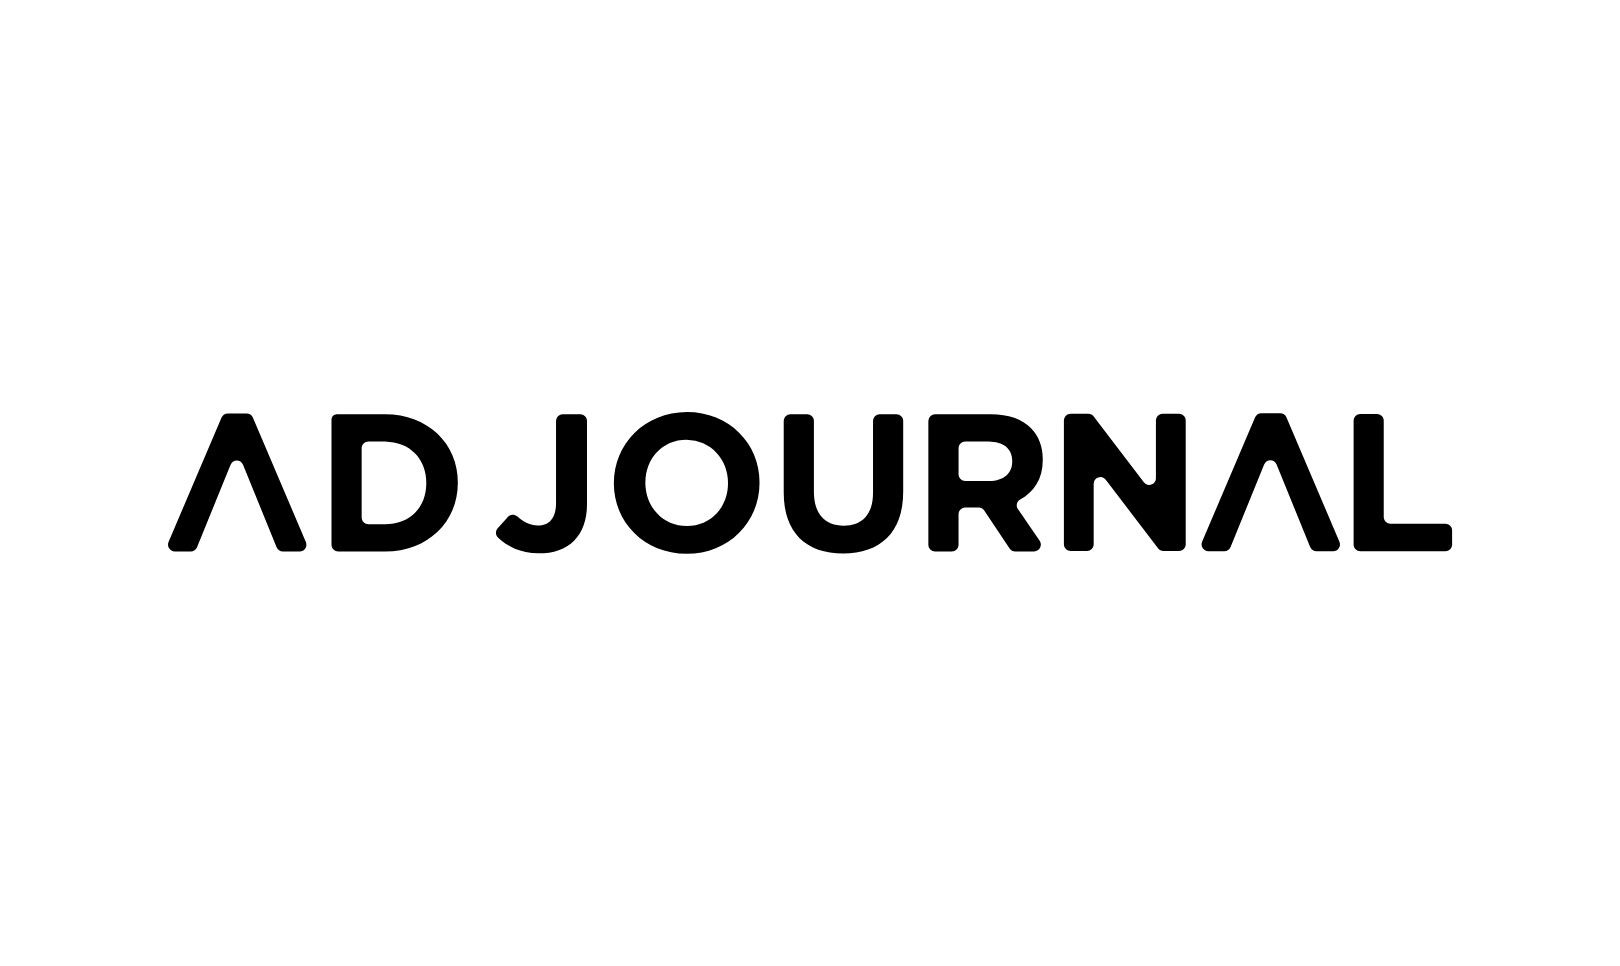 ADVERTISE JOURNALへ寄稿頂けるライターを募集中です。